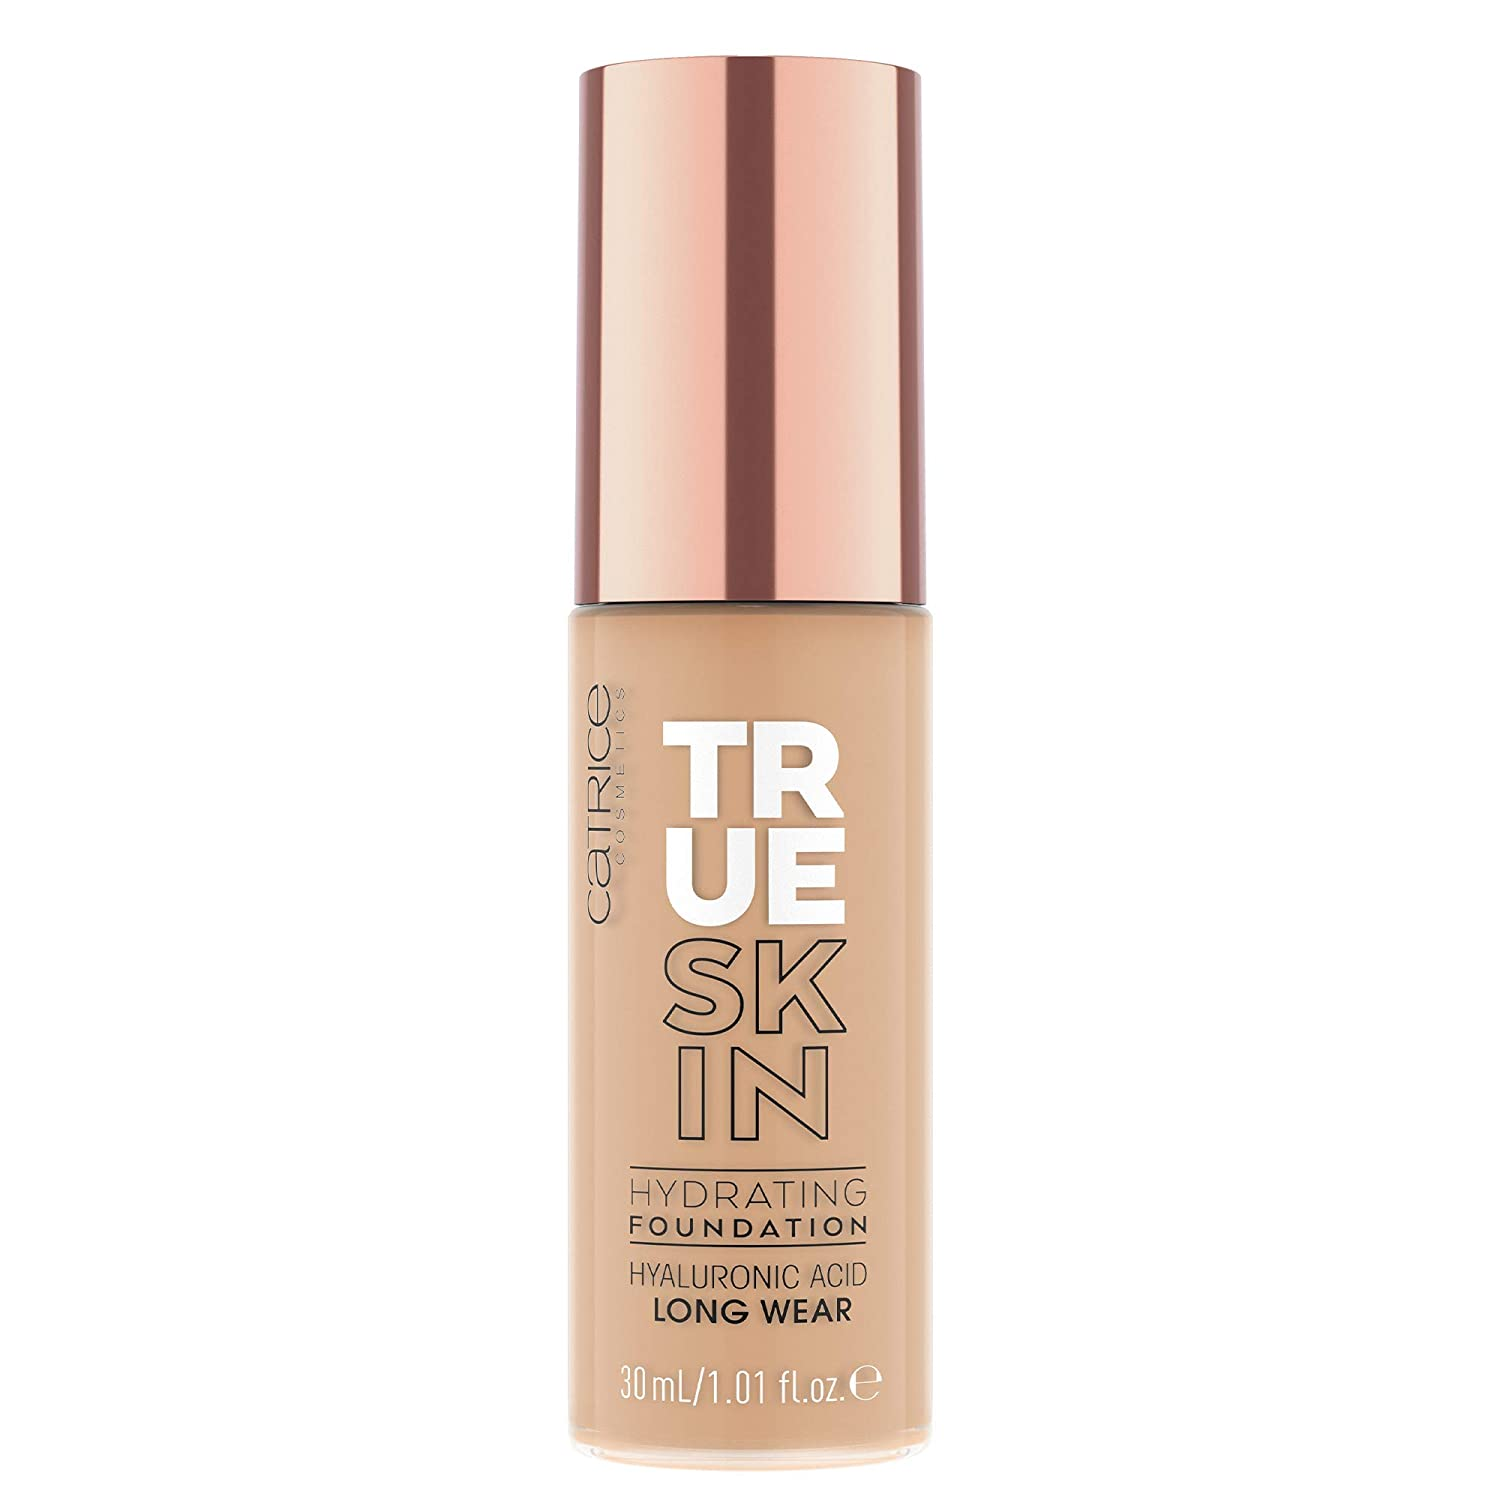 Quality inspection Catrice True Max 62% OFF Skin Hydrating Hazel Neutral 040 Foundation